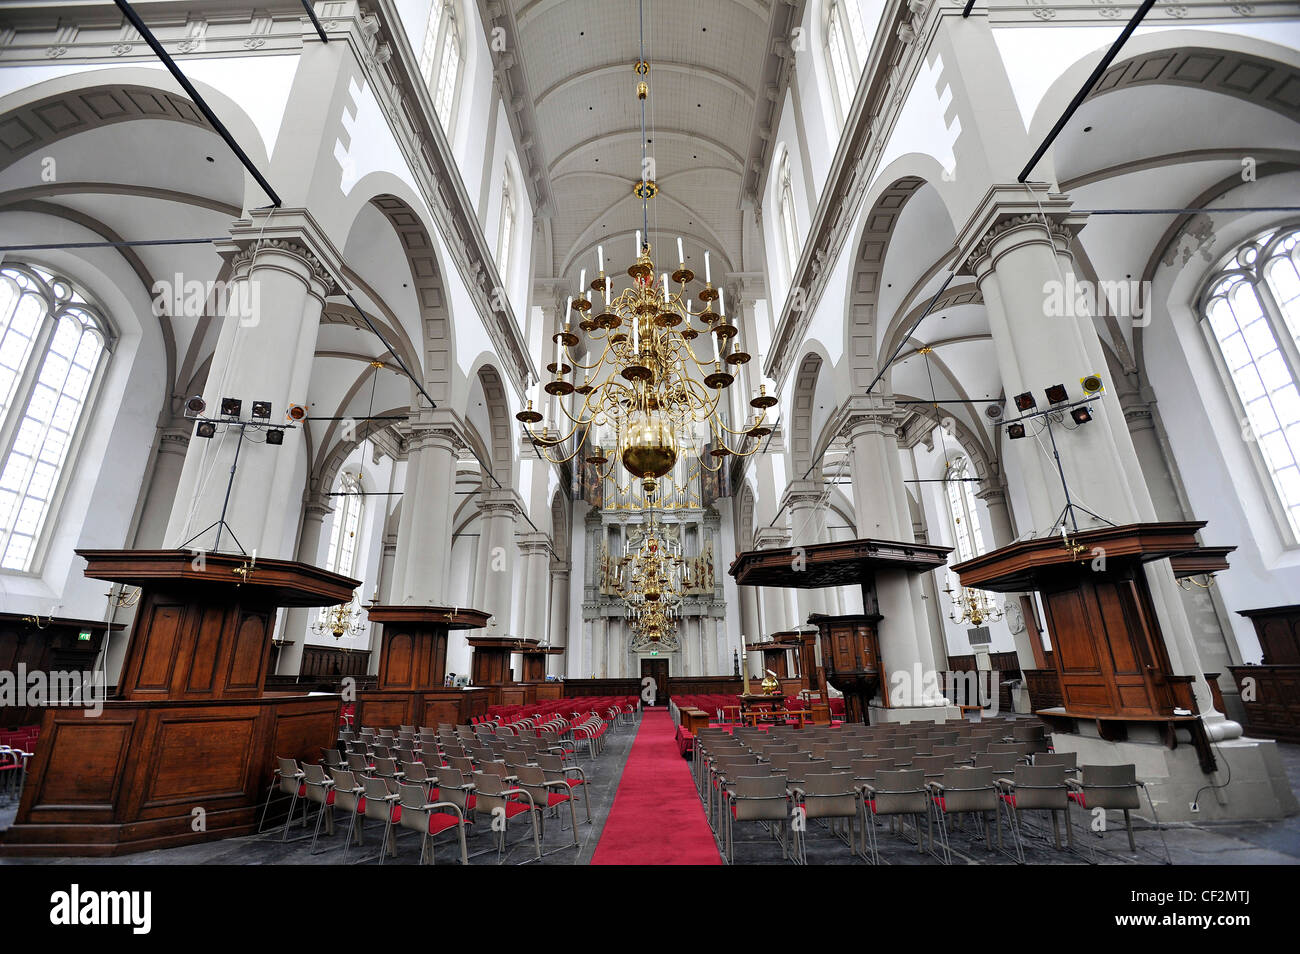 Interior views of the Westerkerk church in Amsterdam, Netherlands. - Stock Image